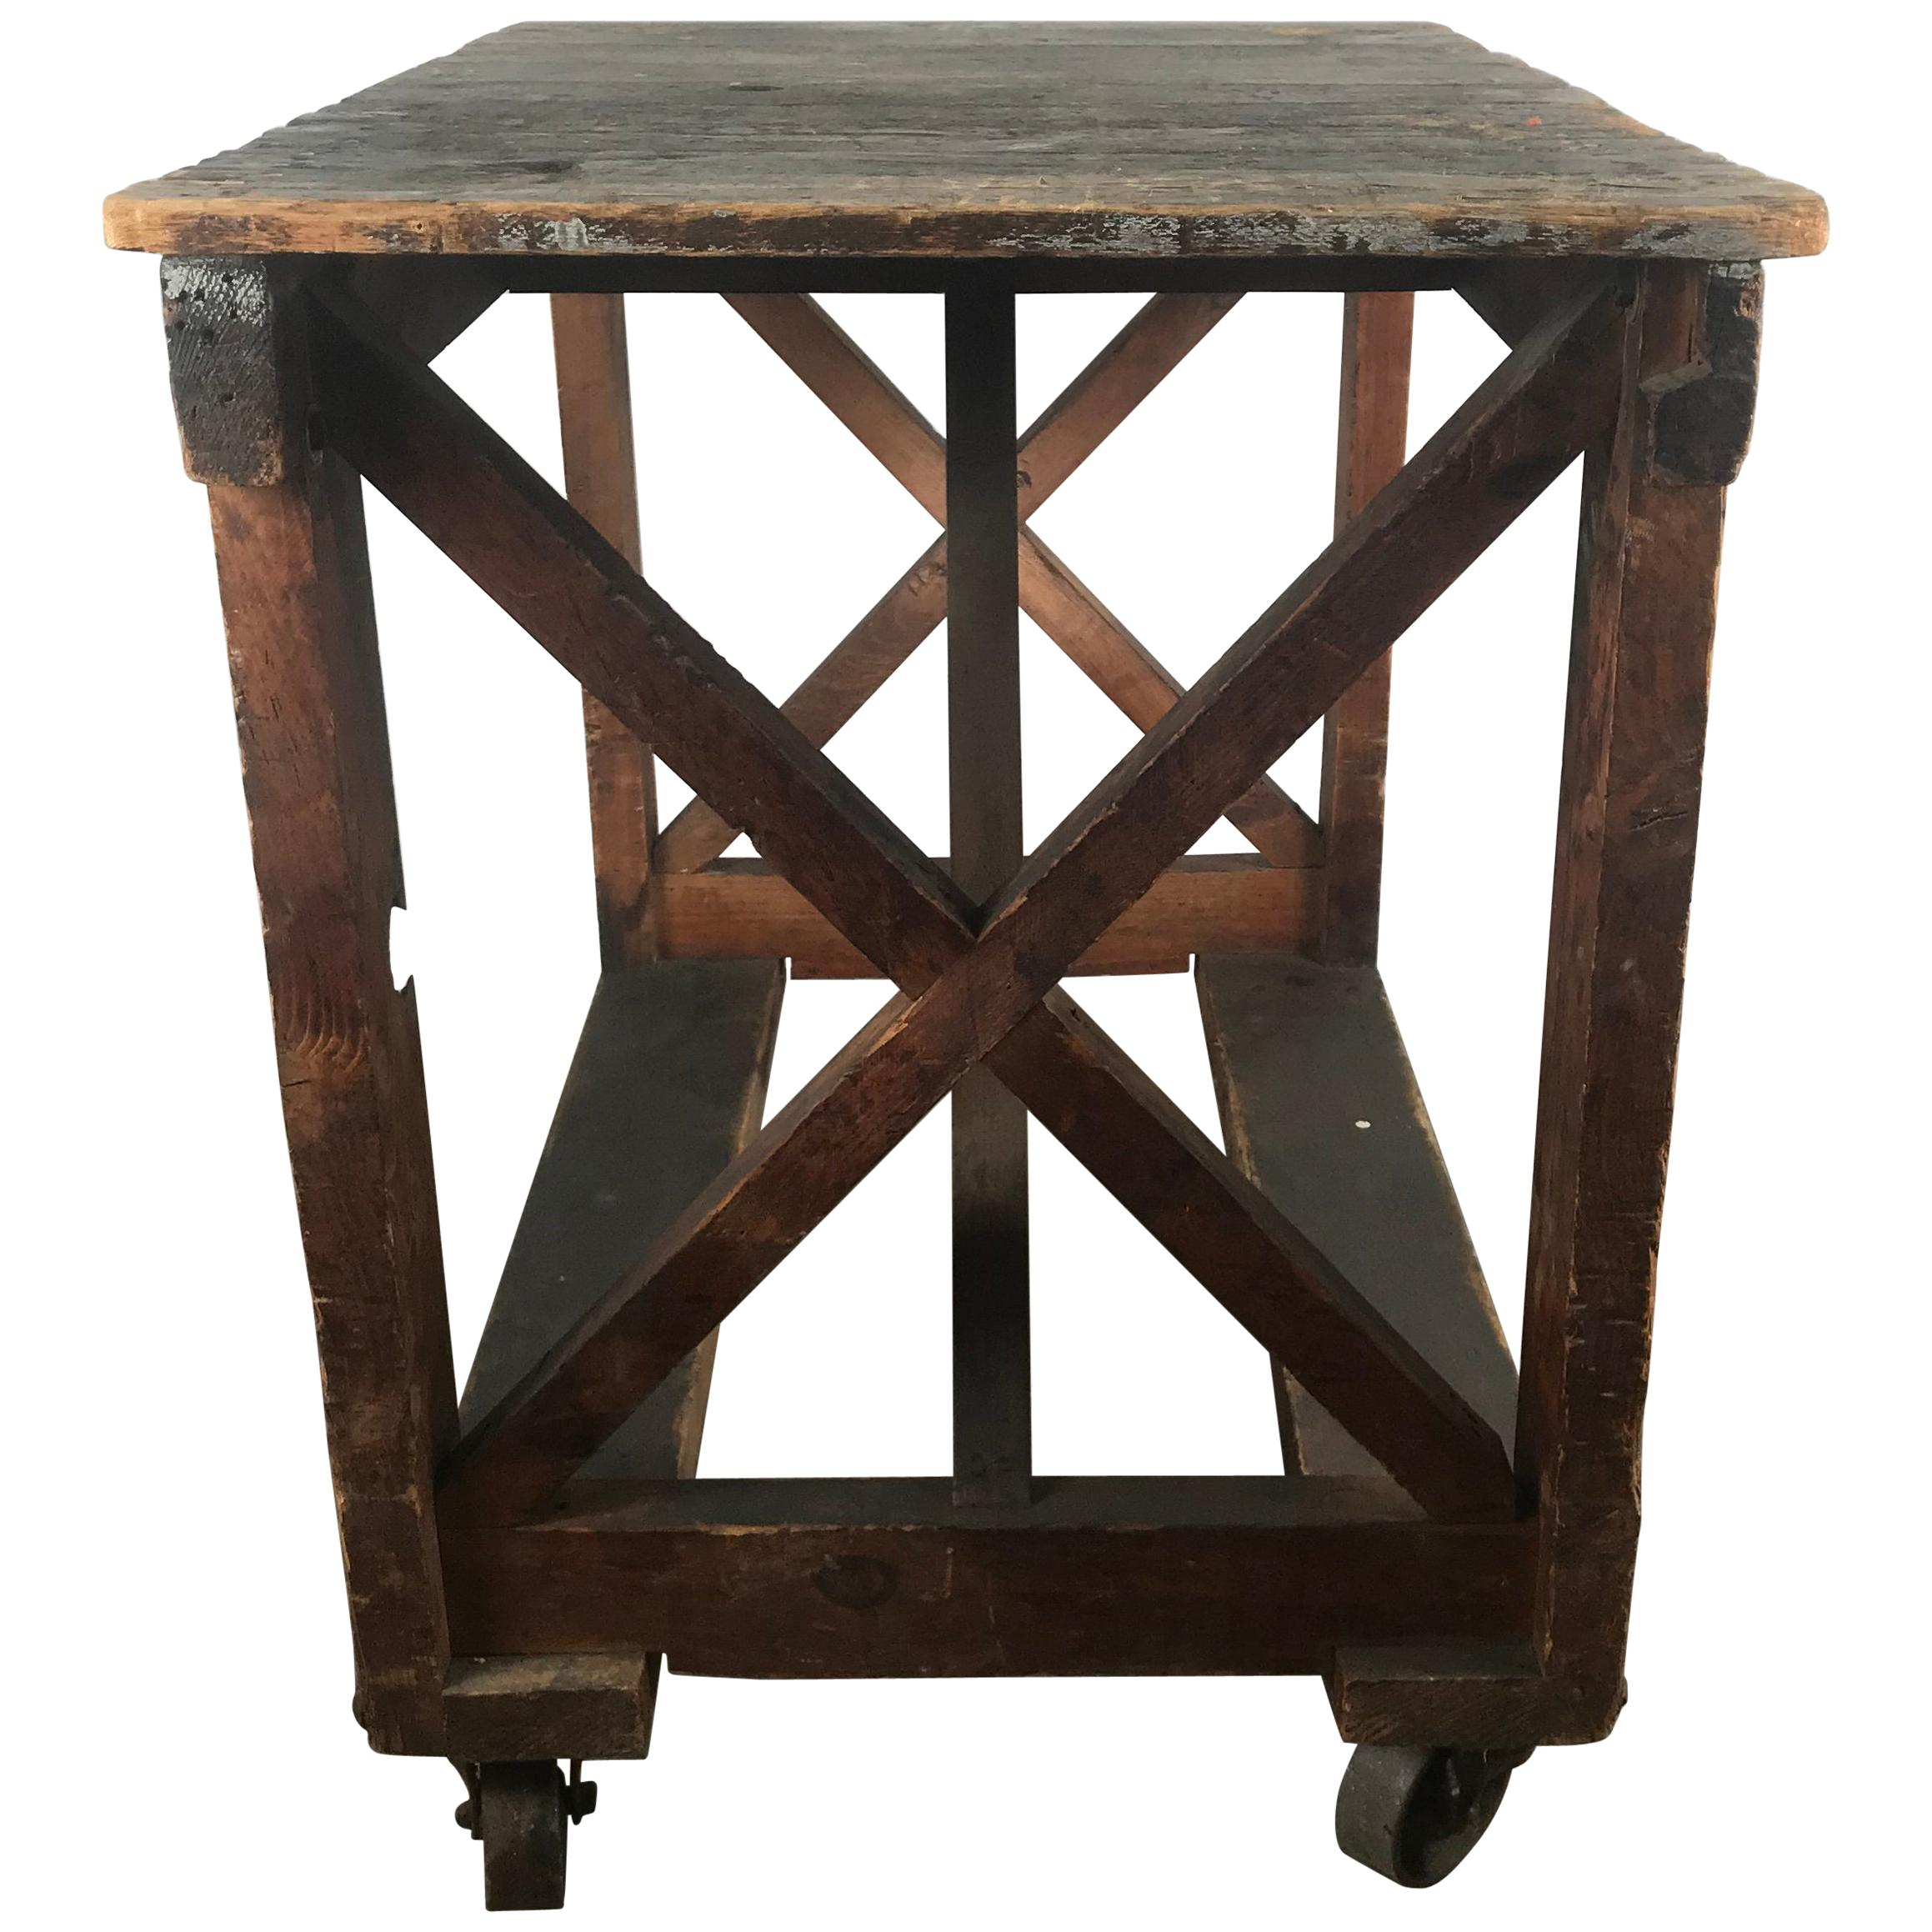 Antique Industrial Factory Work Table On Iron Castors For Sale